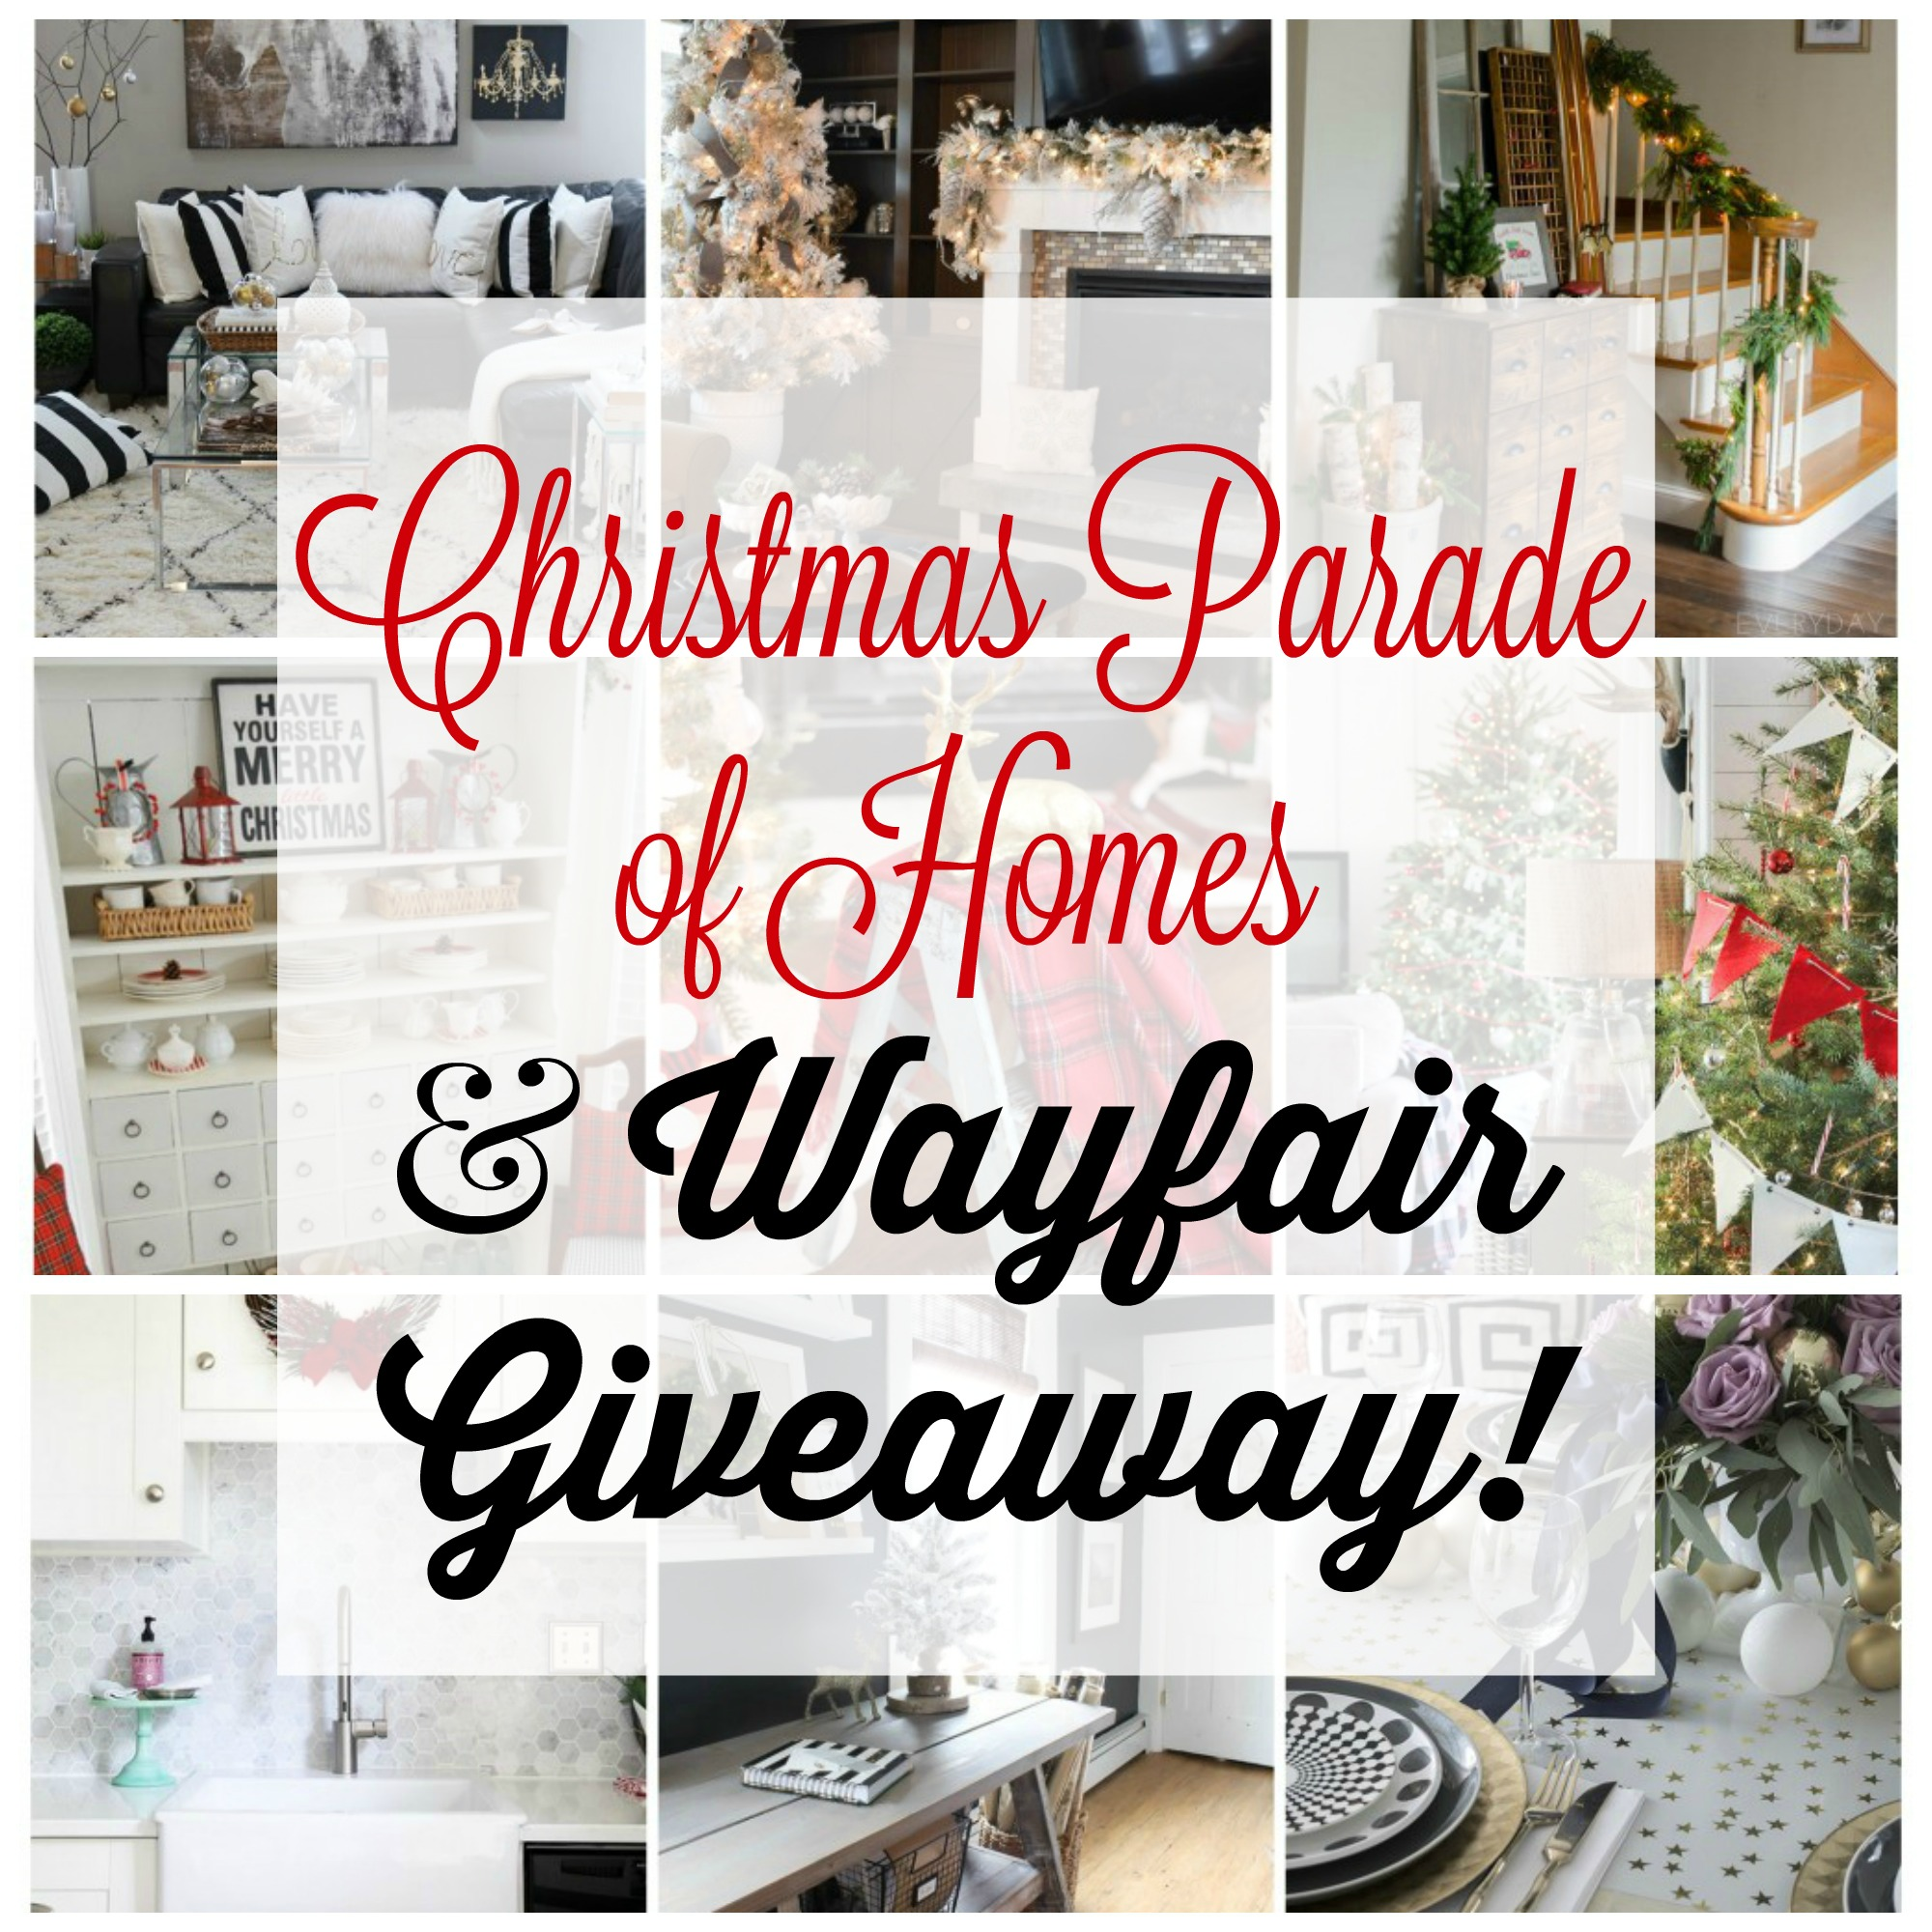 Wayfair Christmas Giveaway at Fox Hollow Cottage blog